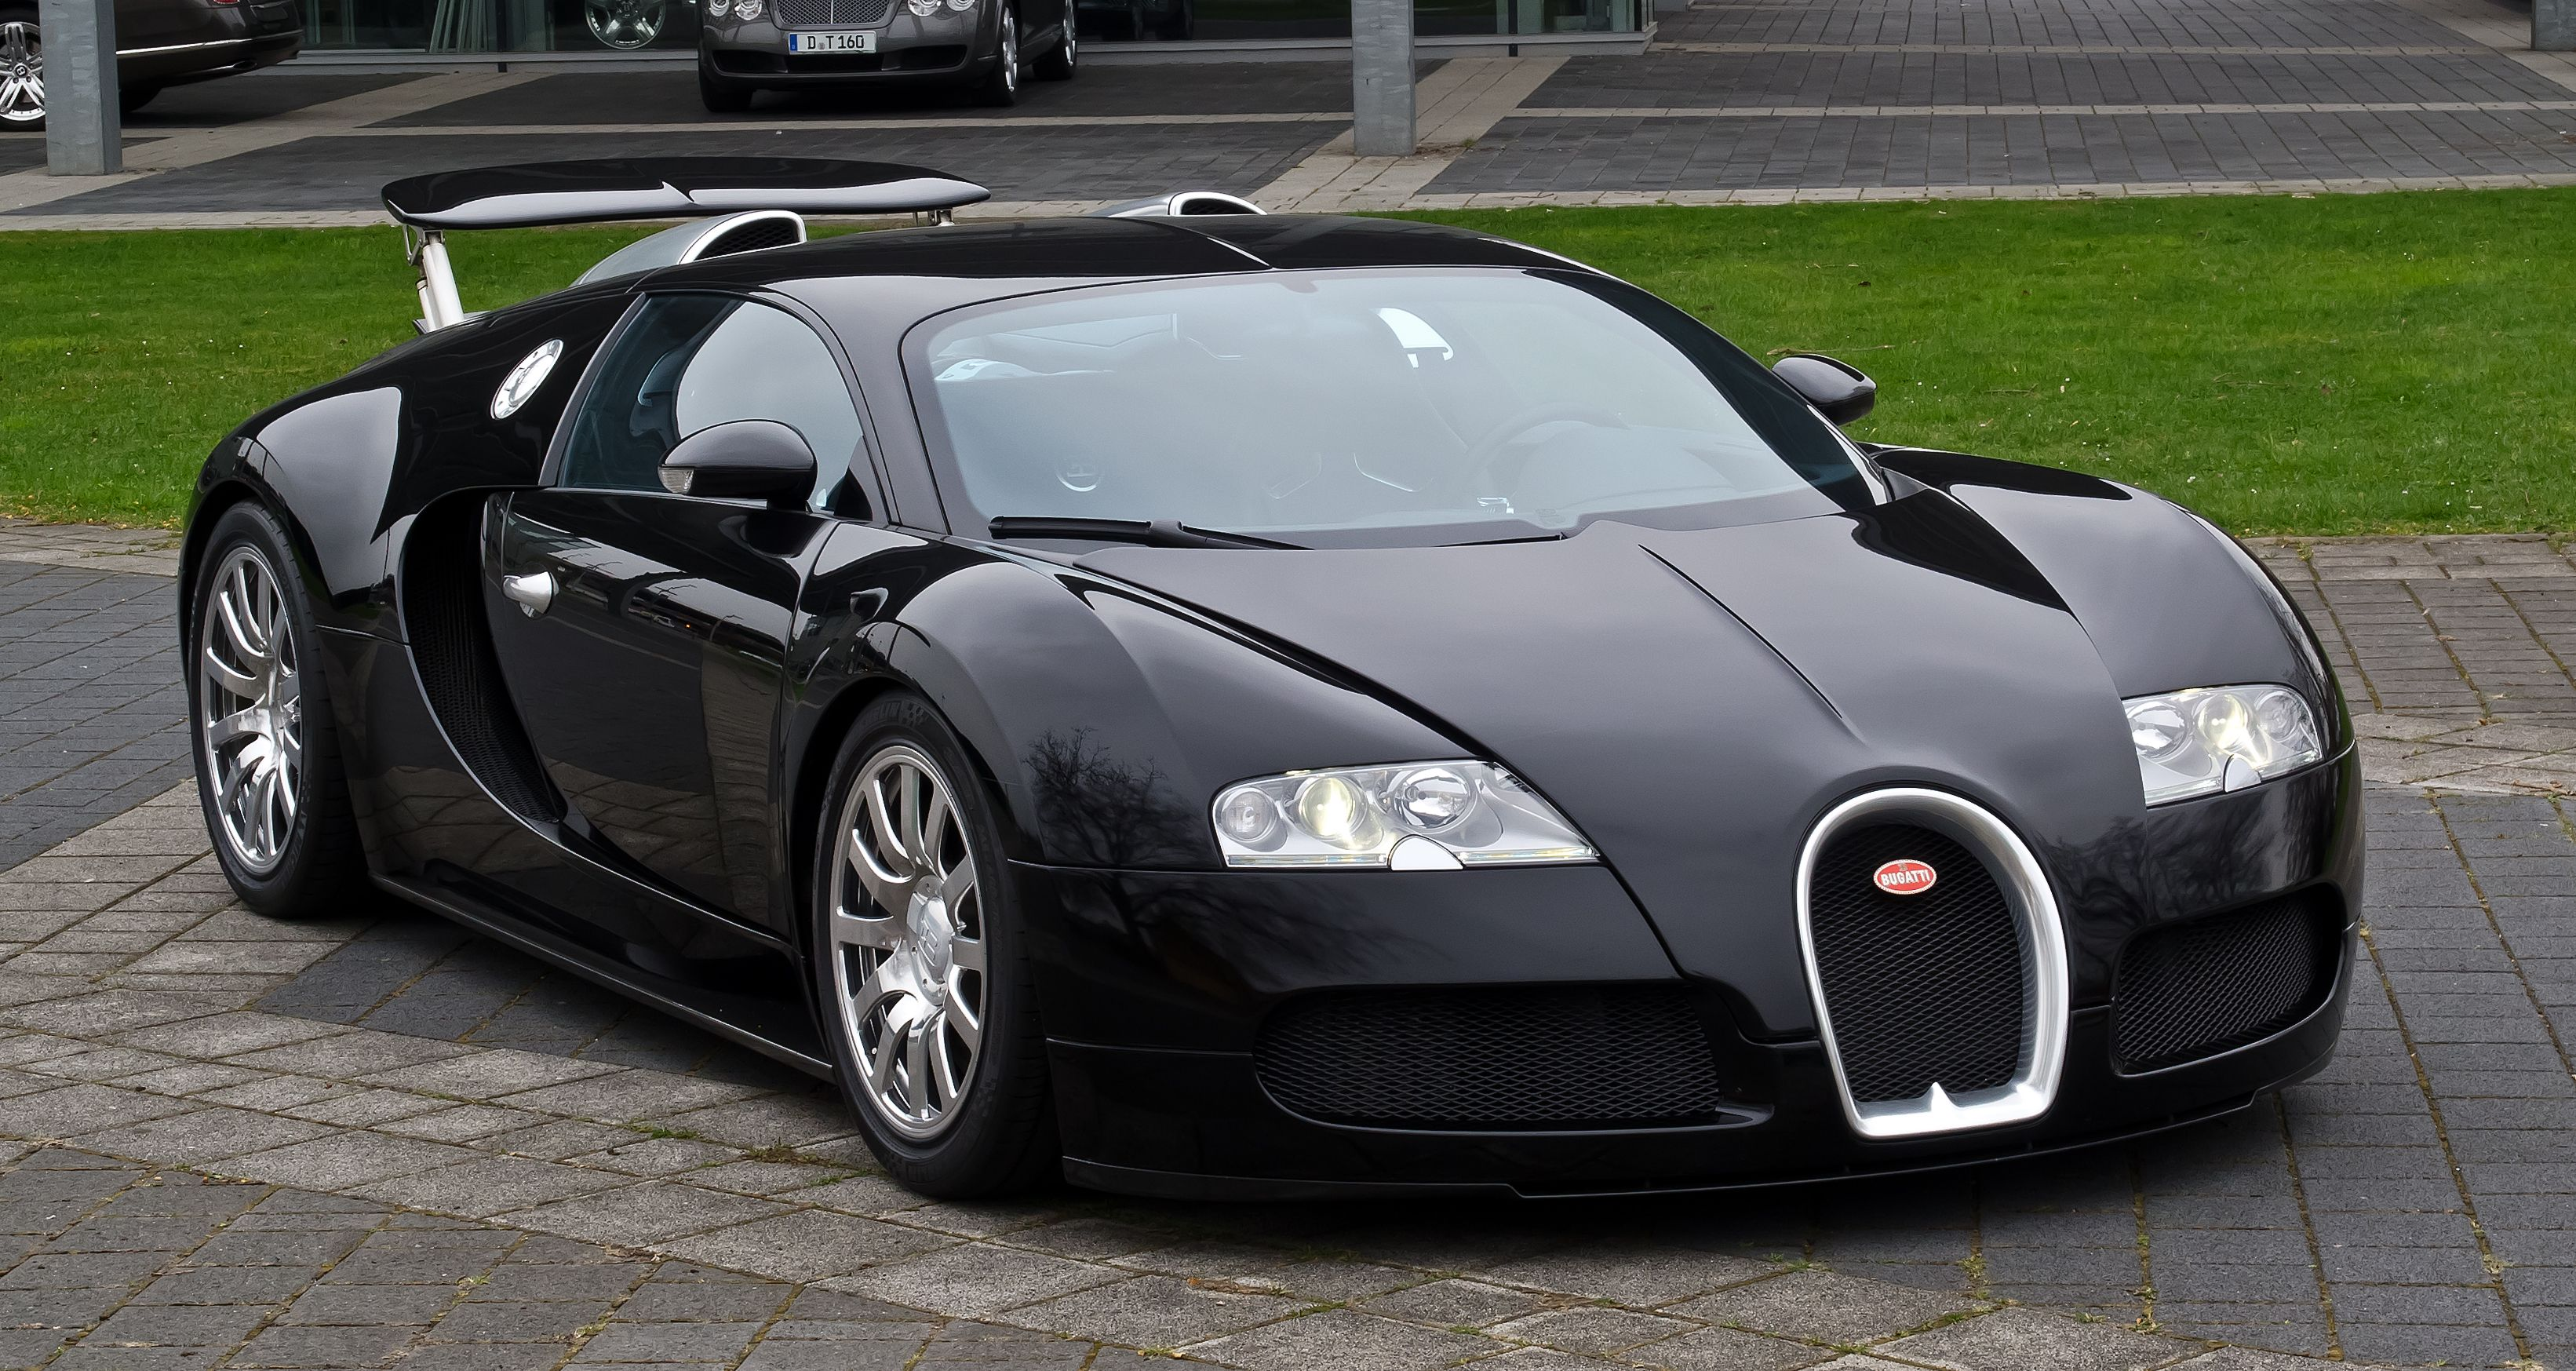 d3d0380f7d0adfbc156667913bc38ae3 Exciting Bugatti Veyron Zero to Sixty Cars Trend